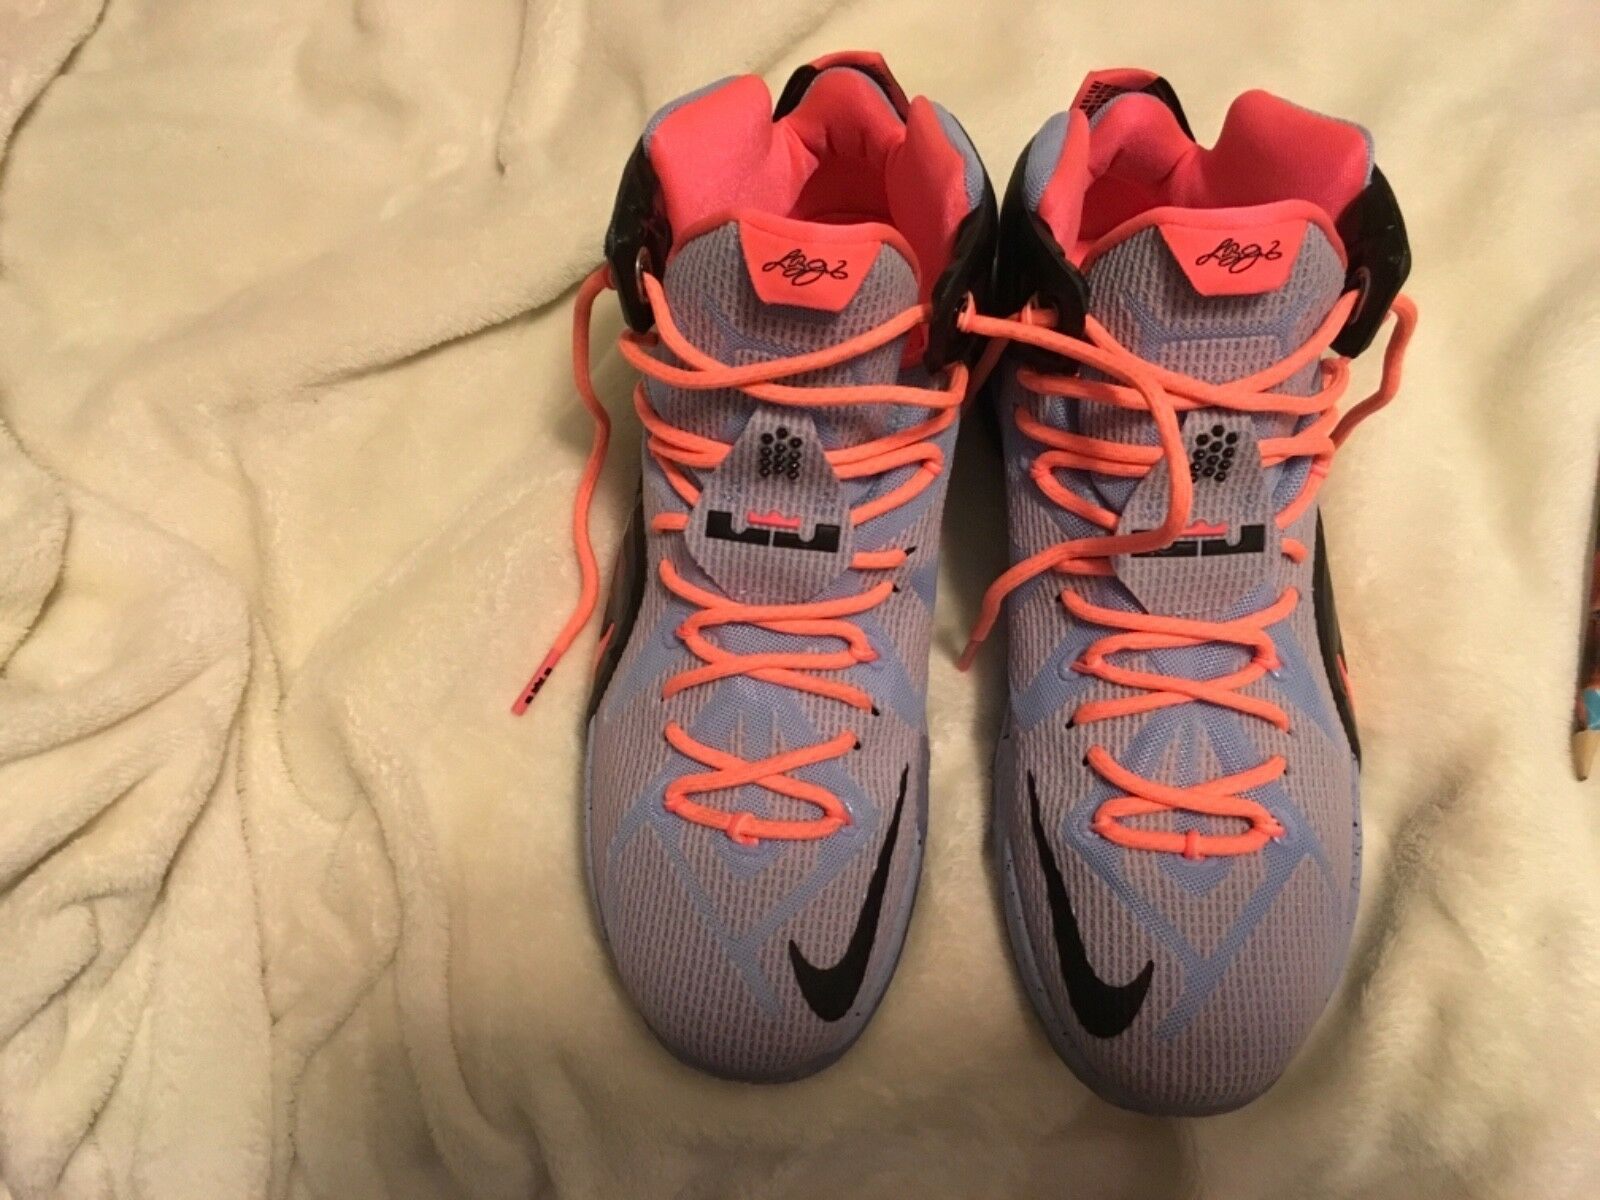 Men's Nike Lebron Easter 12 Comfortable Wild casual shoes